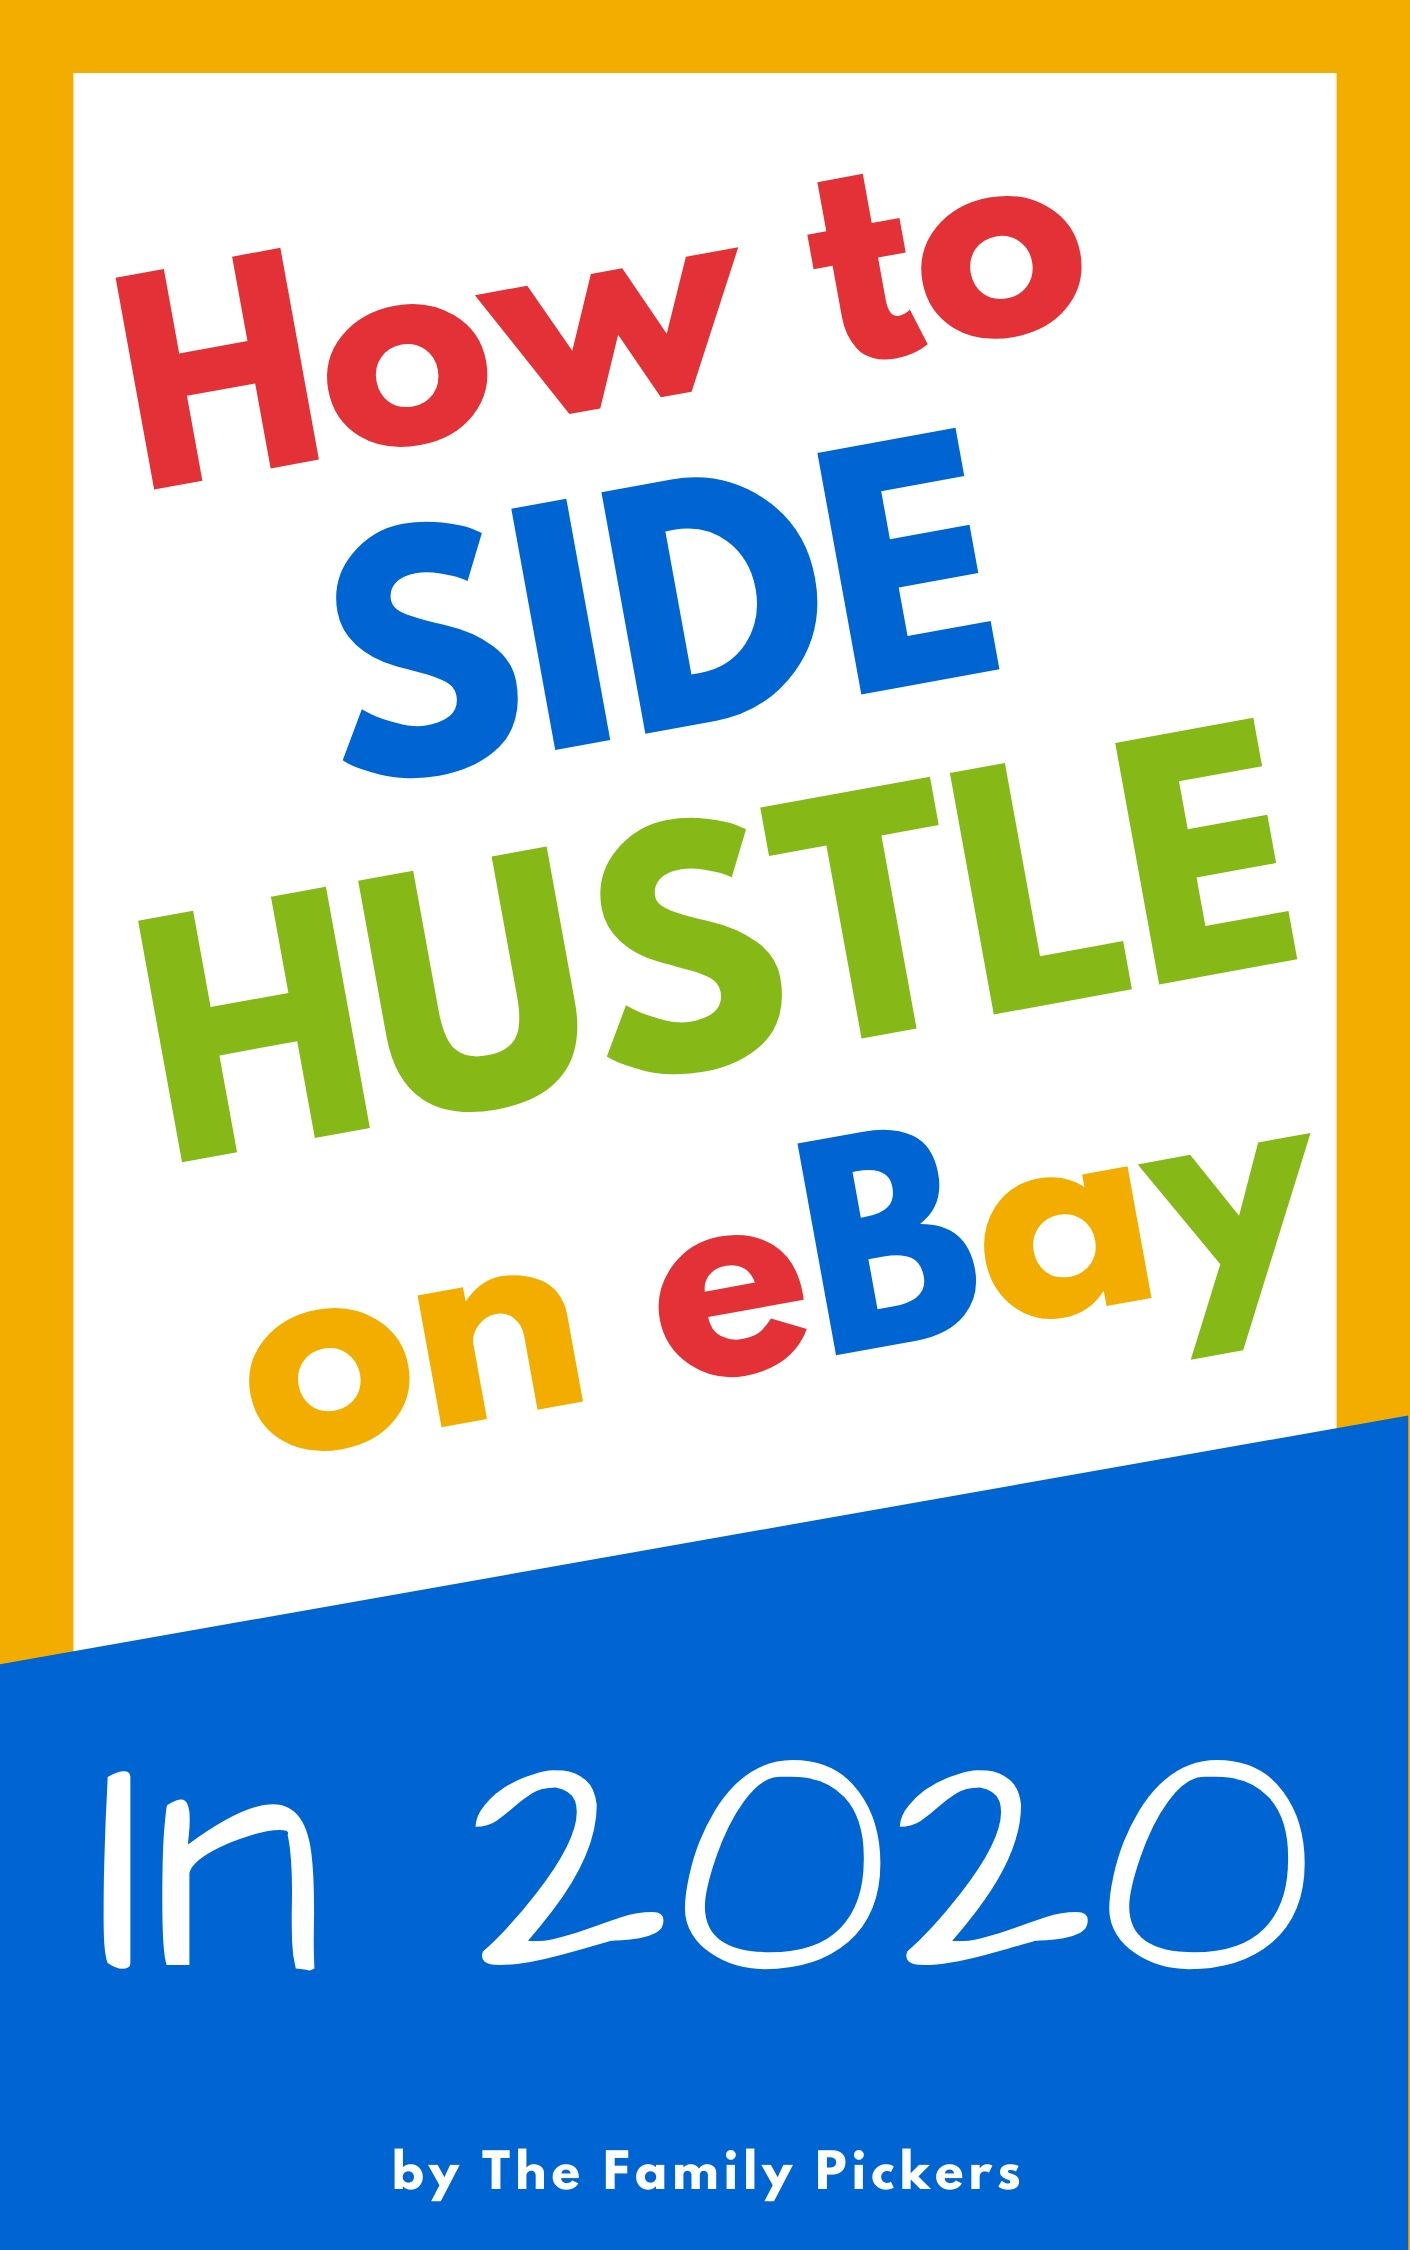 How to Side Hustle on eBay in 2020